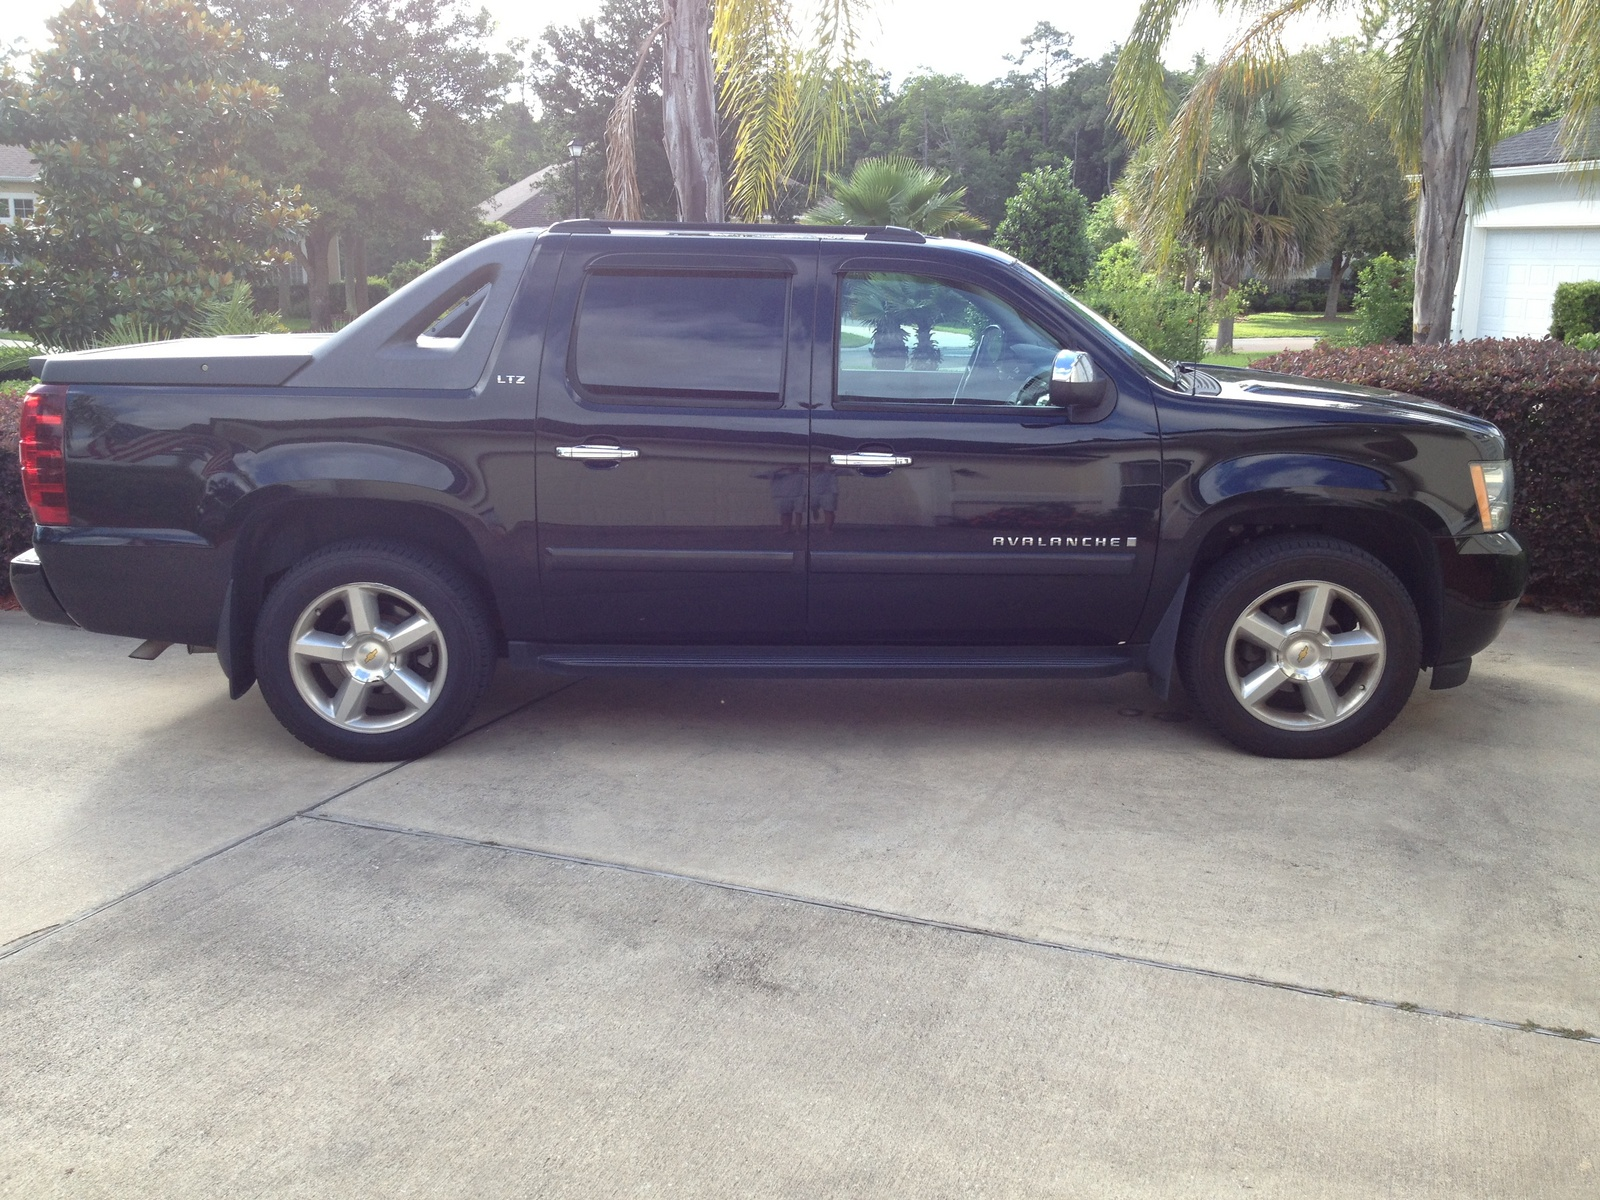 2010 chevy avalanche z71 specs autos post. Black Bedroom Furniture Sets. Home Design Ideas